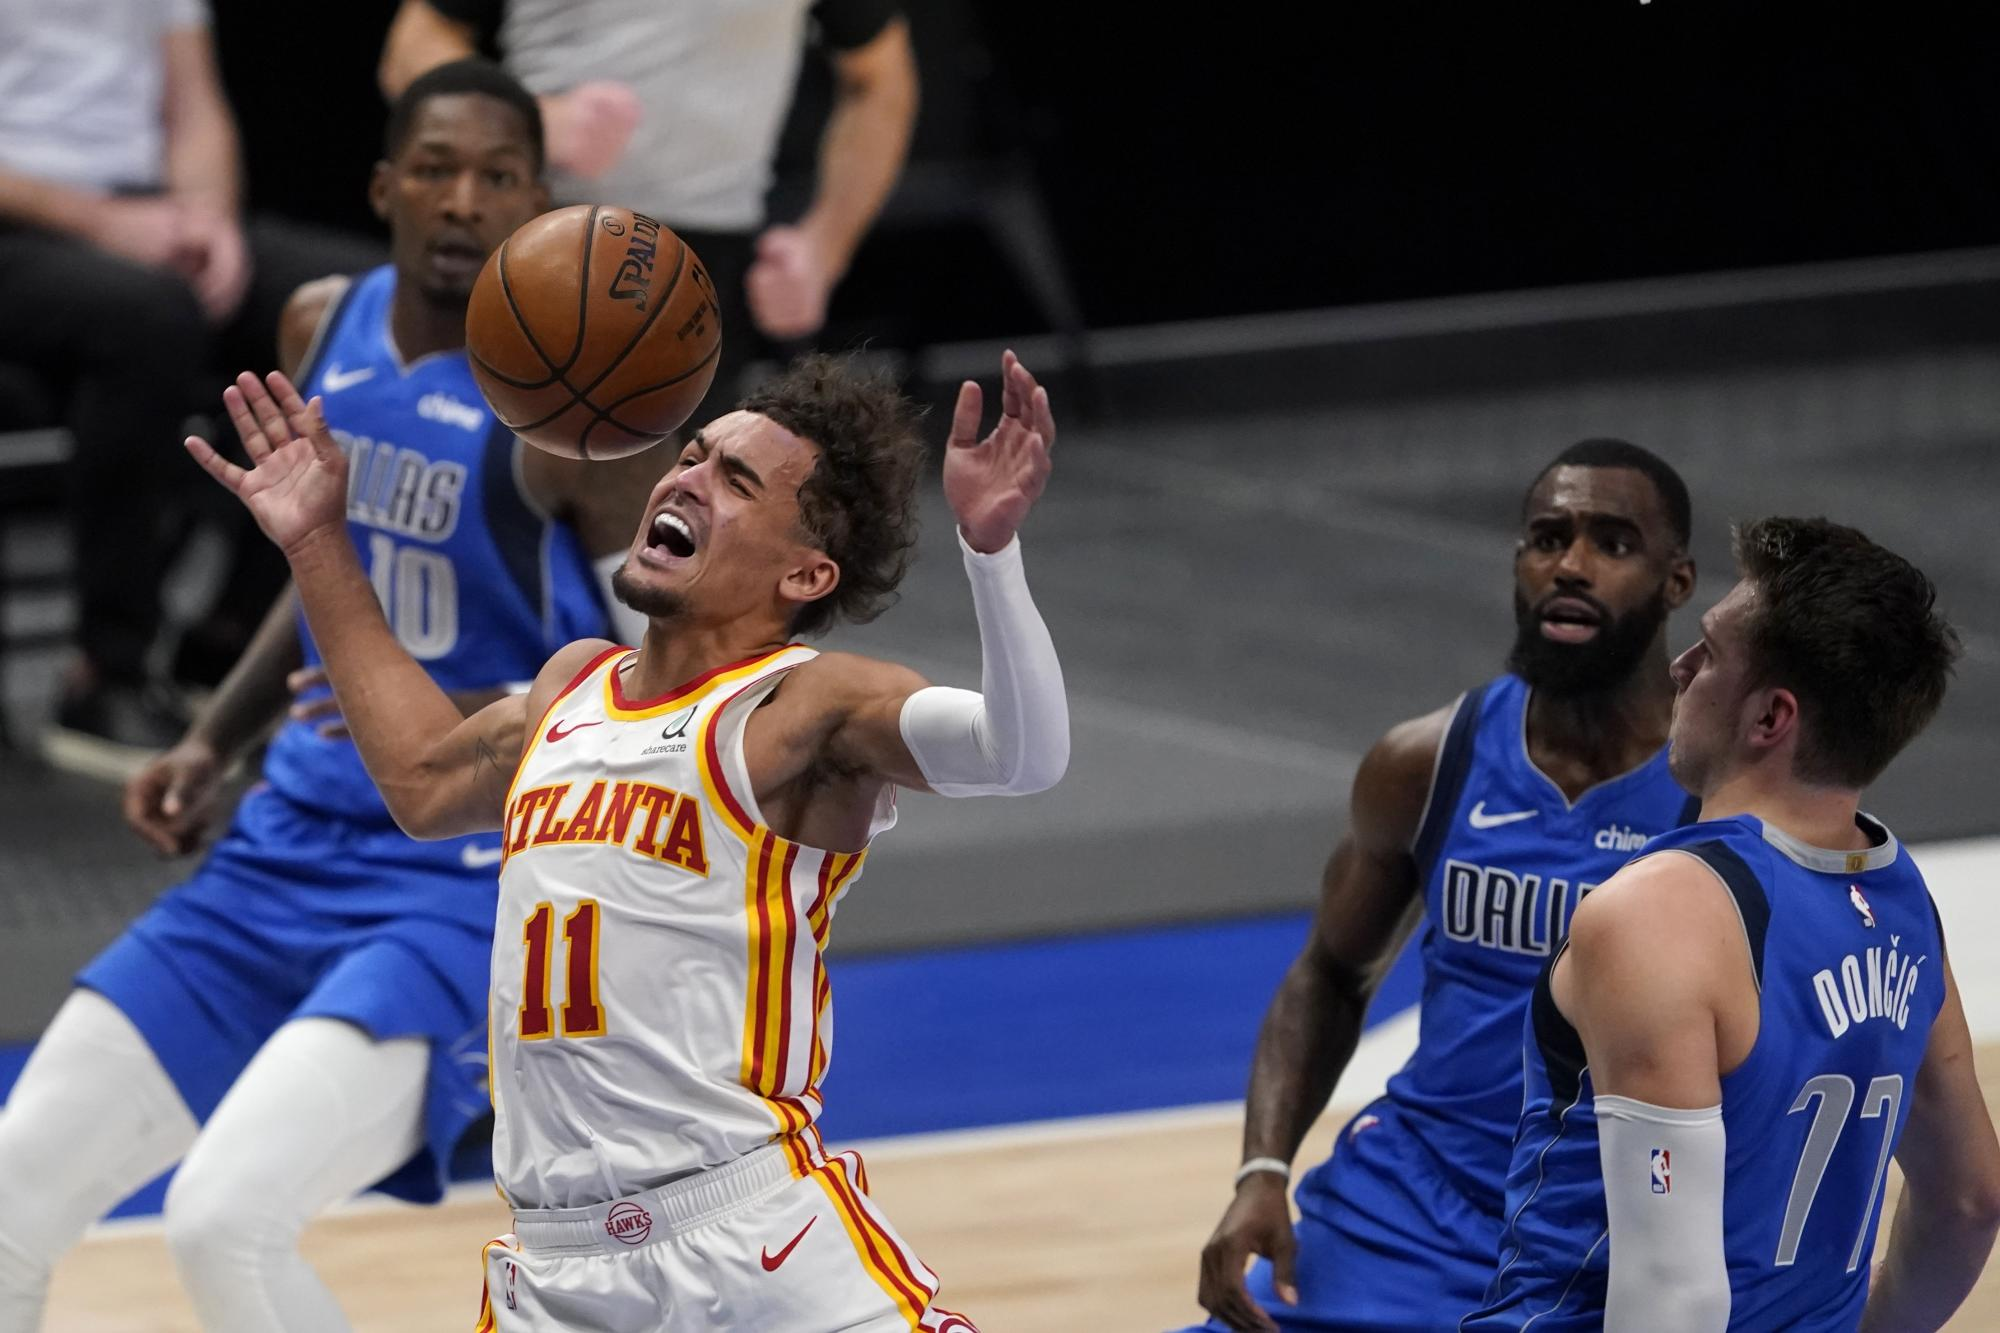 Trae Young fined $20K for berating official after game-ending no-call vs. Mavericks - Yahoo Sports